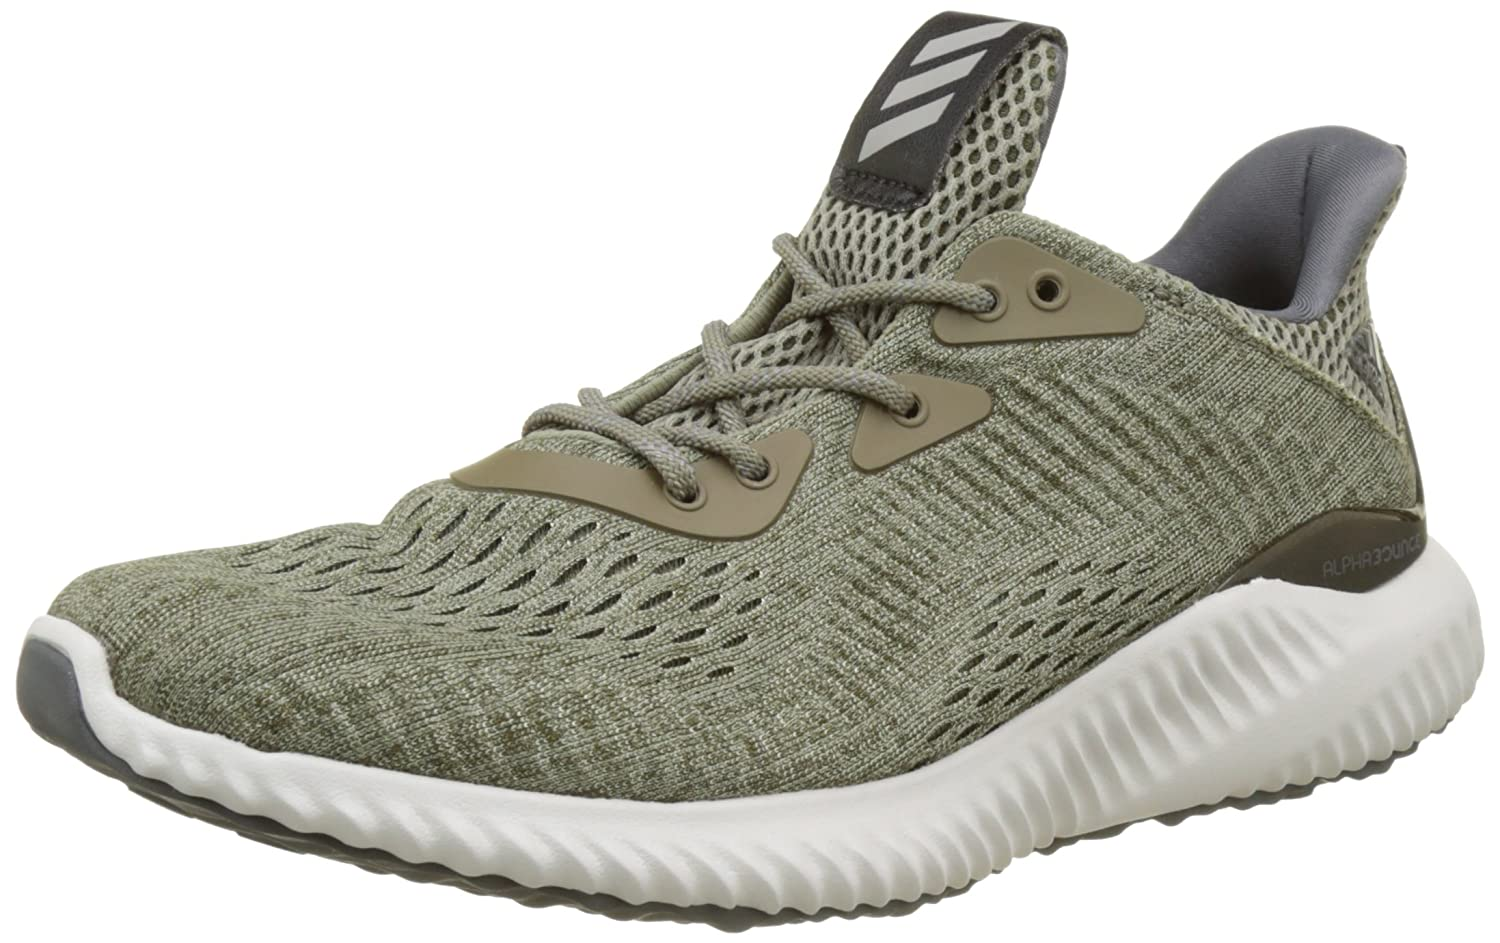 adidas Mens Shoes Running Alphabounce Engineered Mesh Training Gym B071ZGGMTJ EU 44 2/3 - UK 10 - US 10.5|Trace Olive /Trace Cargo /Grey One